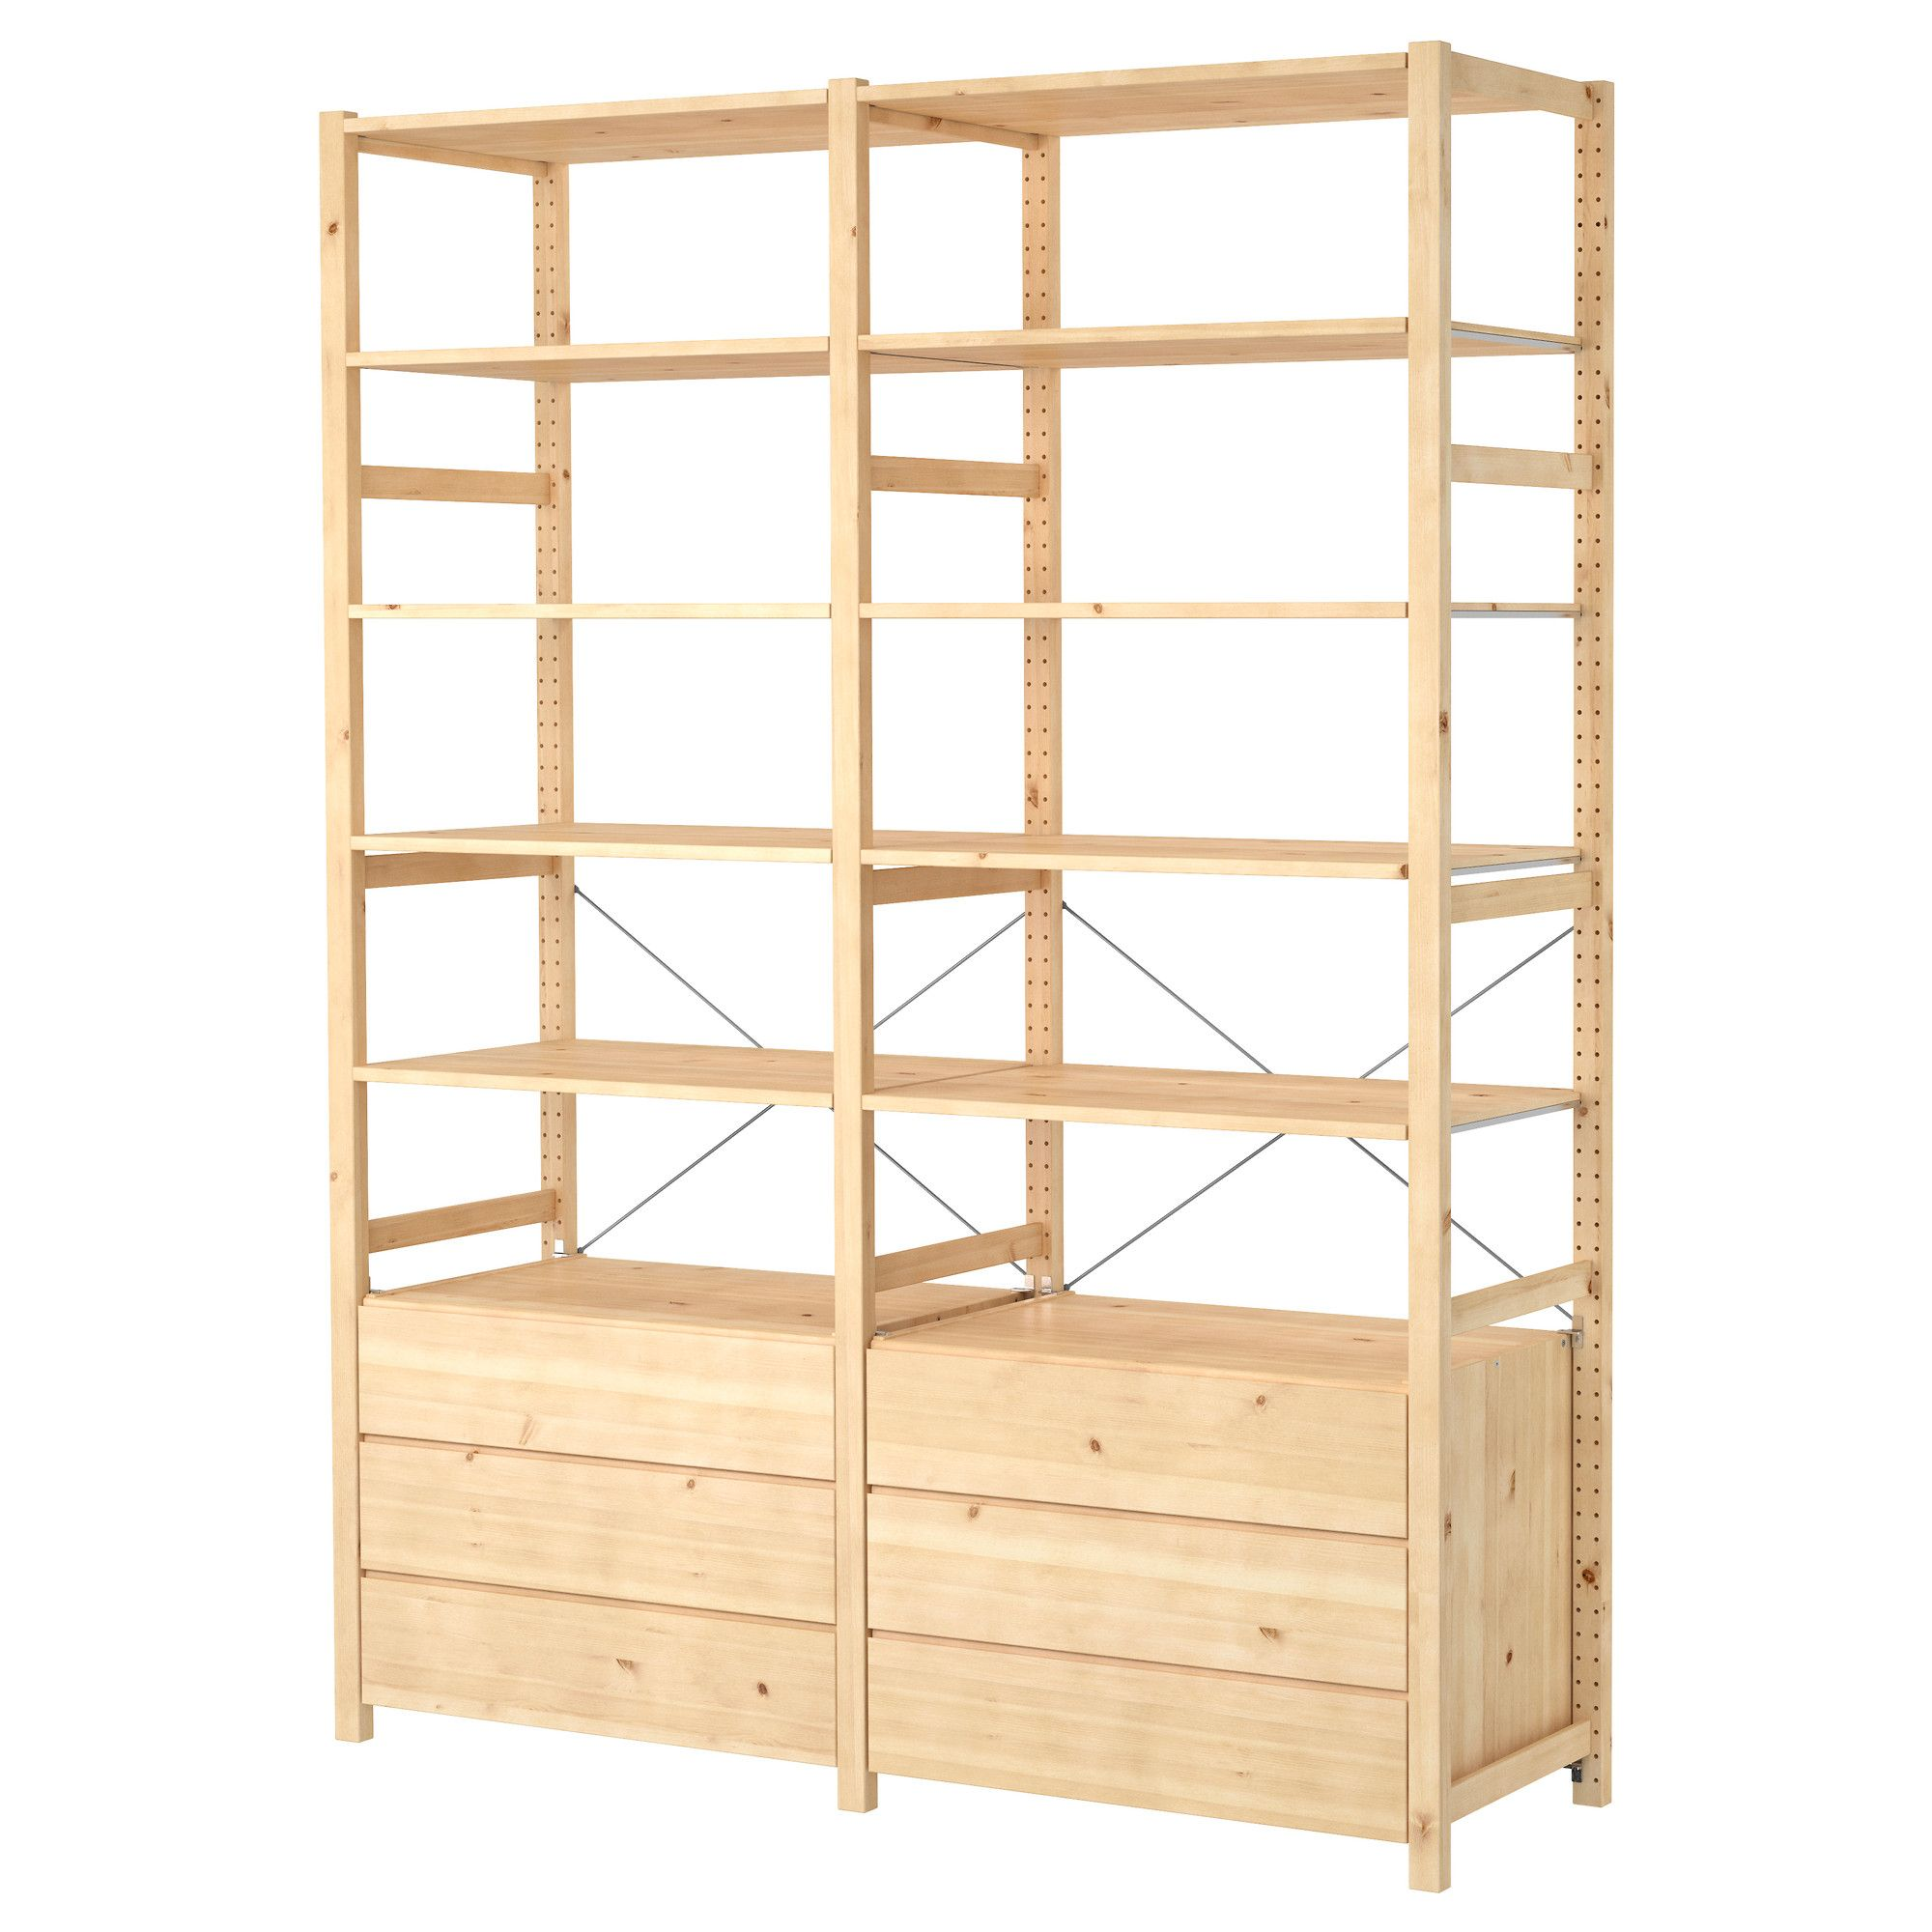 IVAR 2 section shelving unit with chest, pine